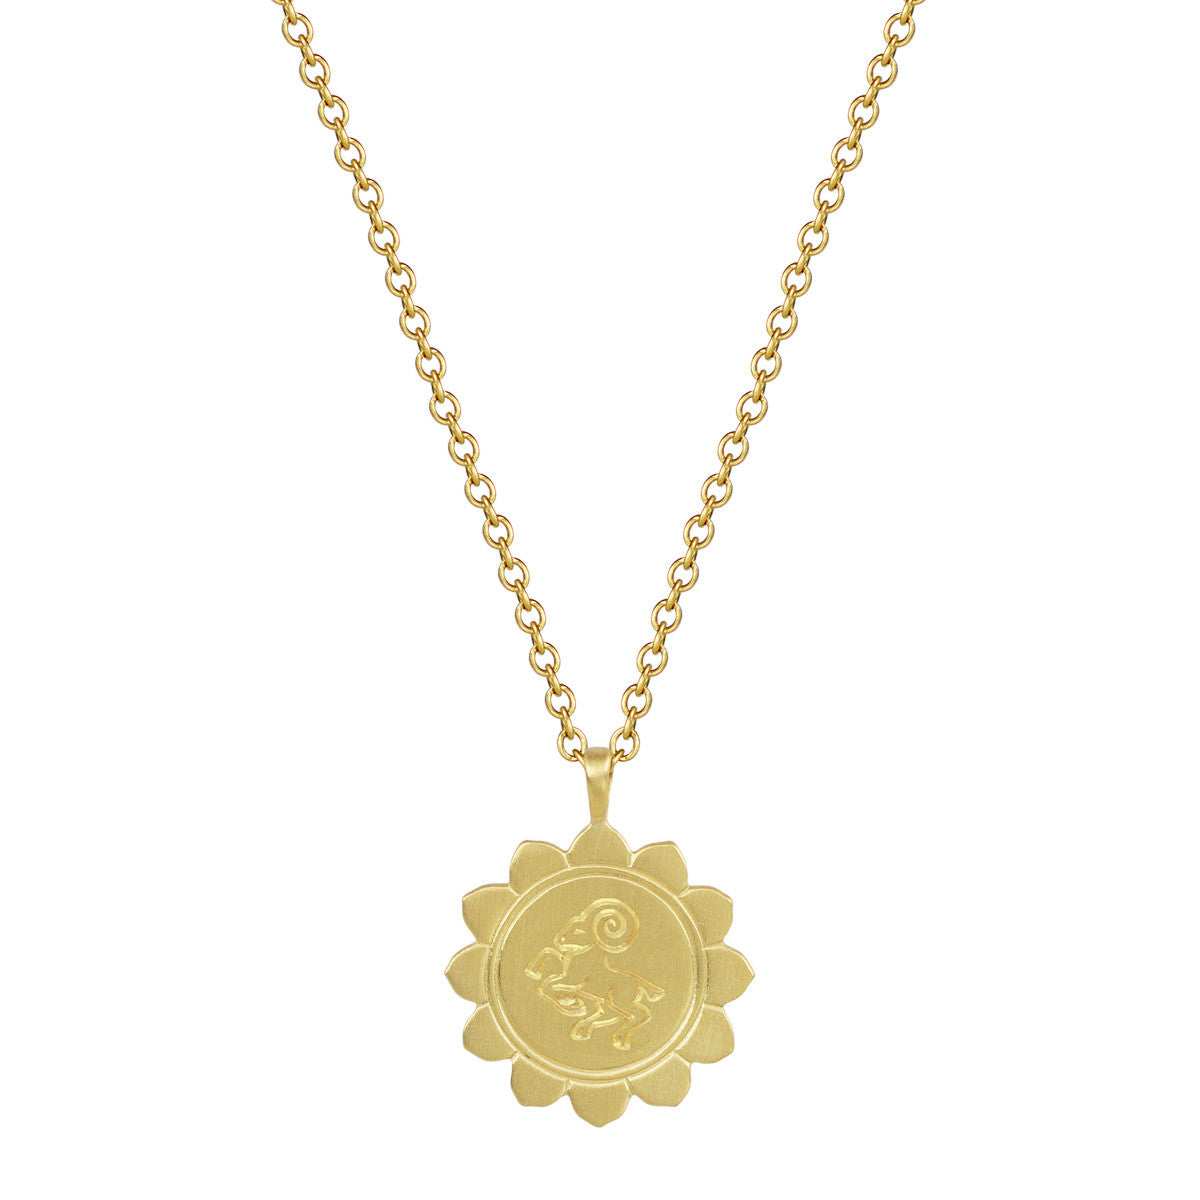 18K Gold Medium Lotus Aries Astrology Pendant